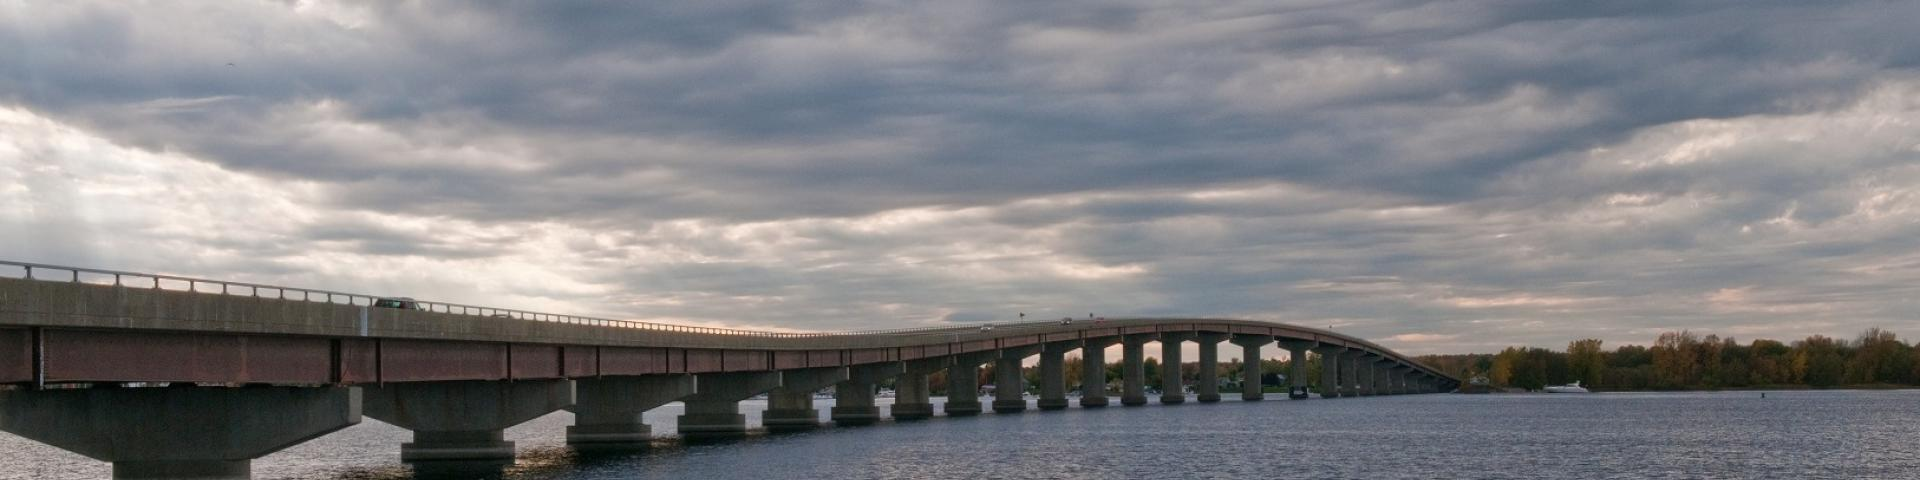 Image of bridge over Lake Champlain near Rouses Point, New York